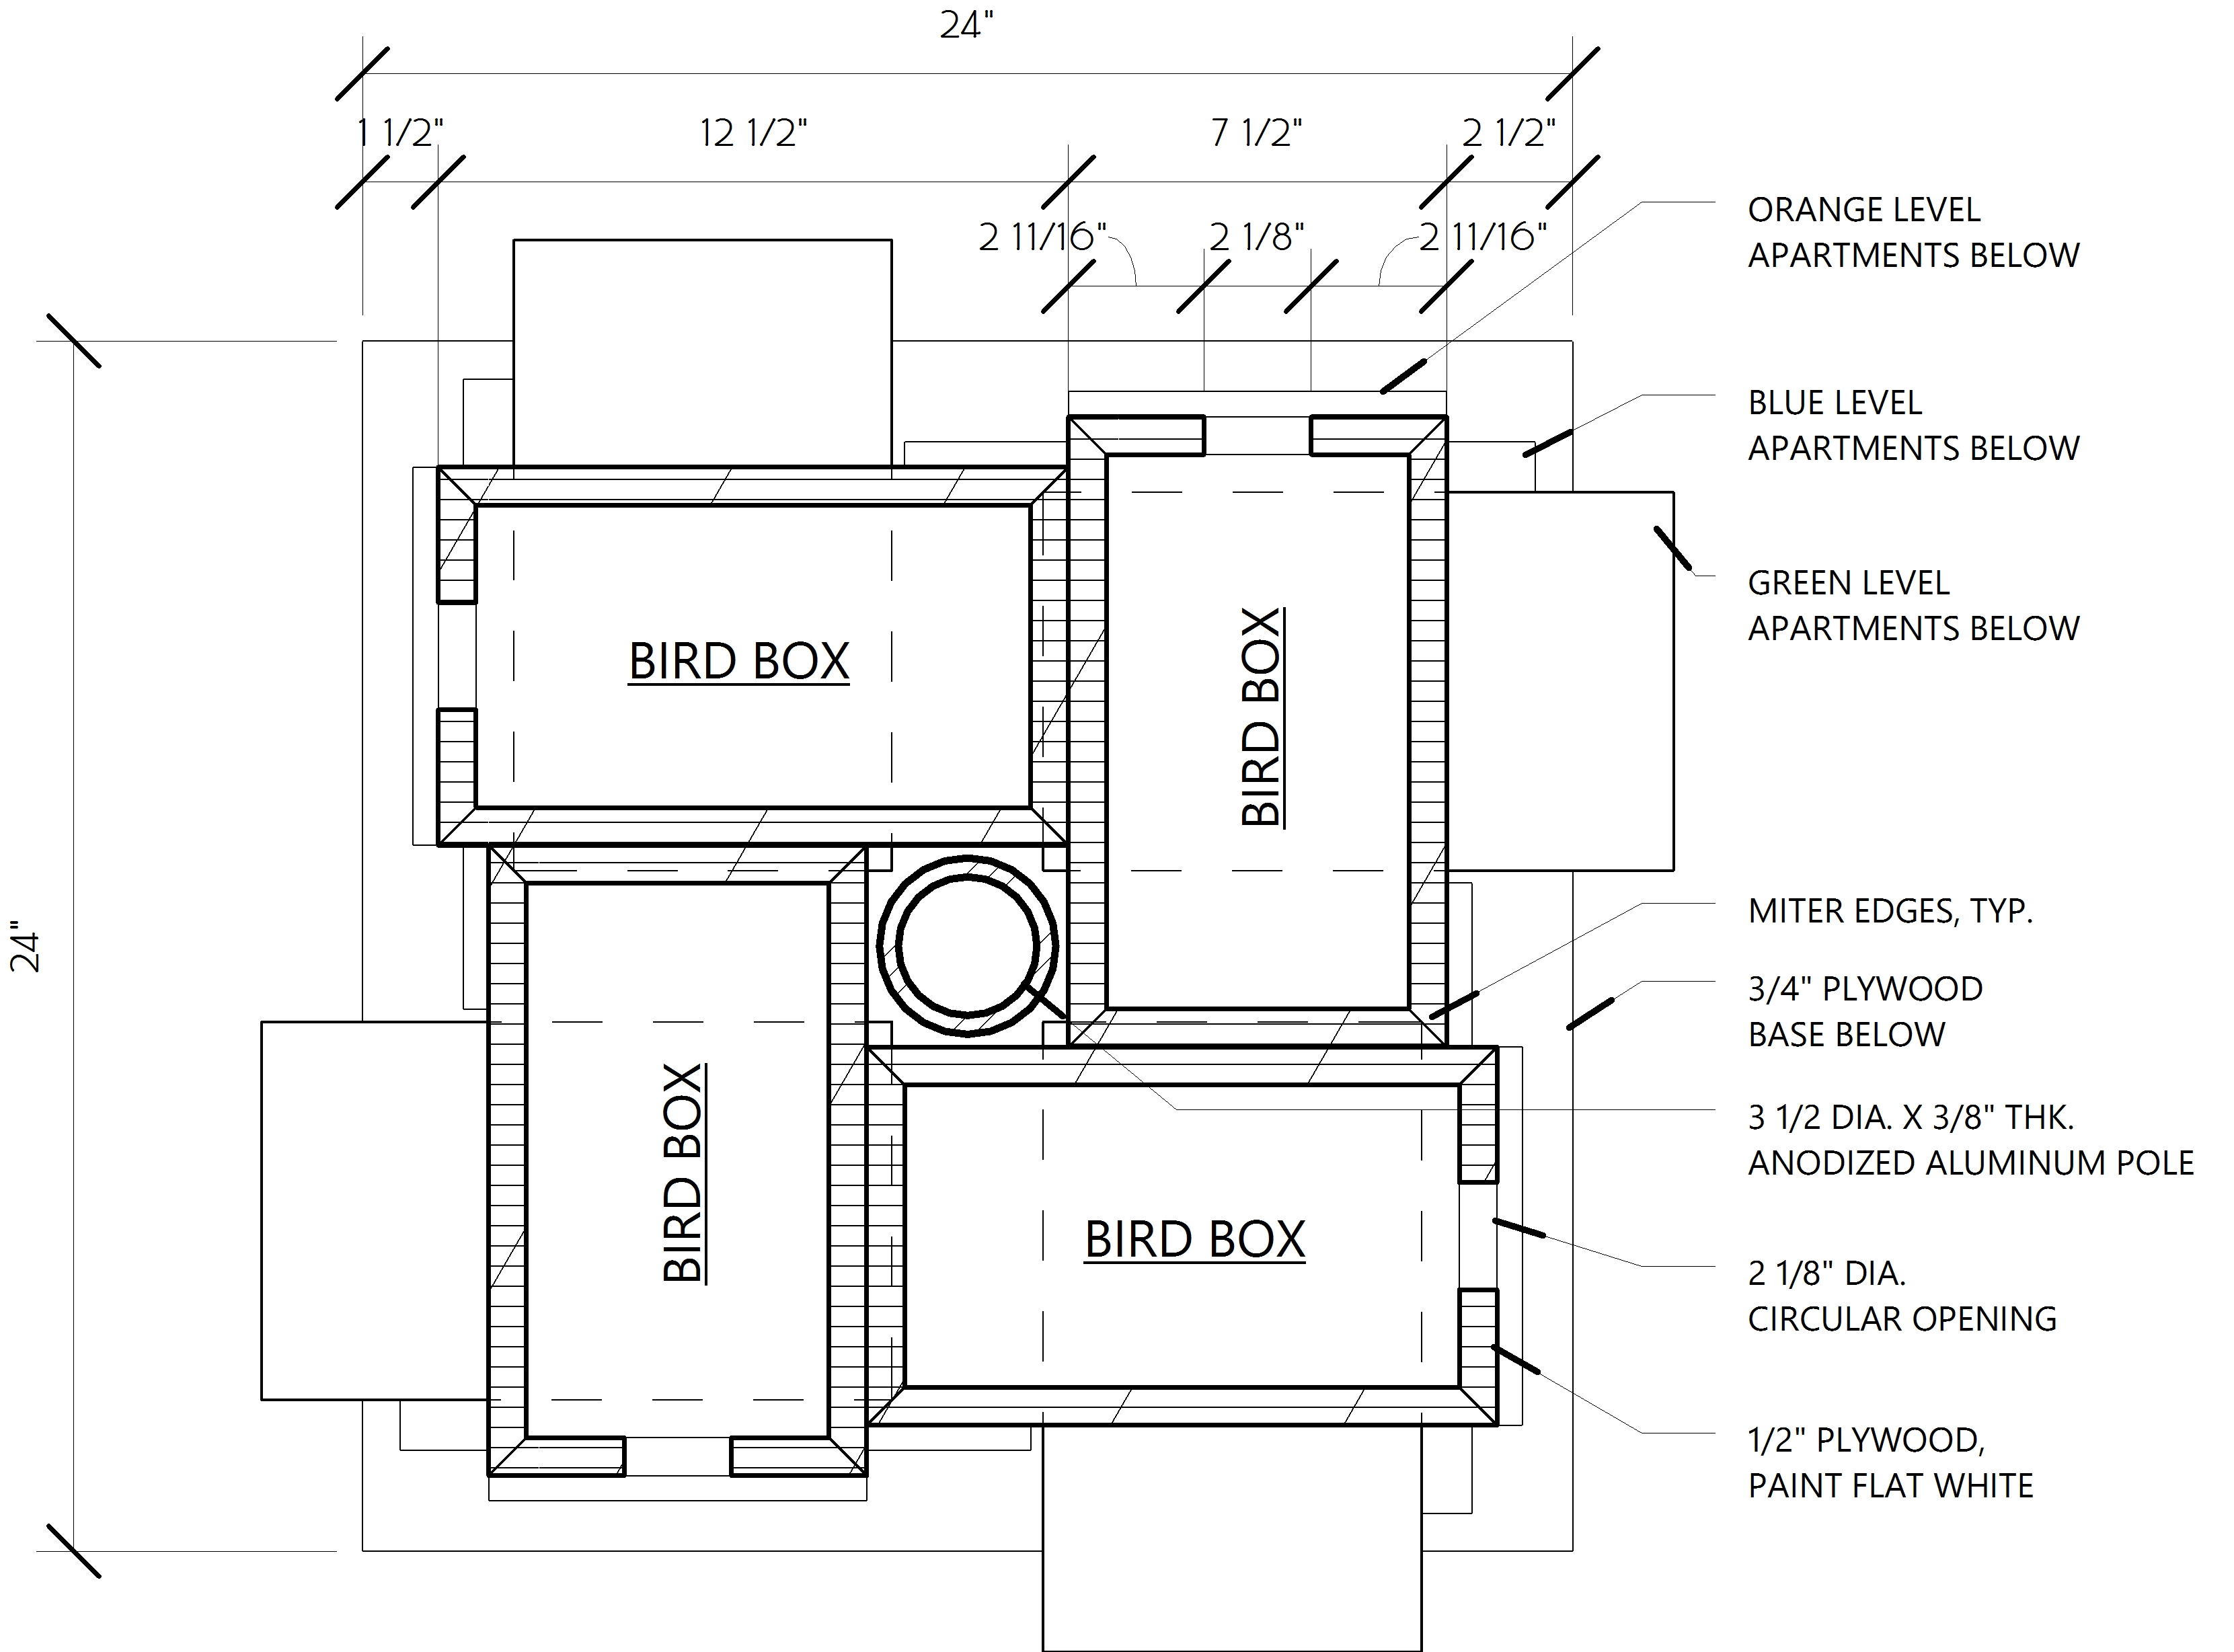 Free birdhouse plans uk, barn storage shed with loft plans, how to on sports house design, food house design, cooking house design, training house design, home house design, paper house design, family house design, external house design, digital house design, apple house design, manufacturing house design, science house design, electronic house design, architecture house design, business house design, english house design, school house design, online house design, mouse house design, movie house design,